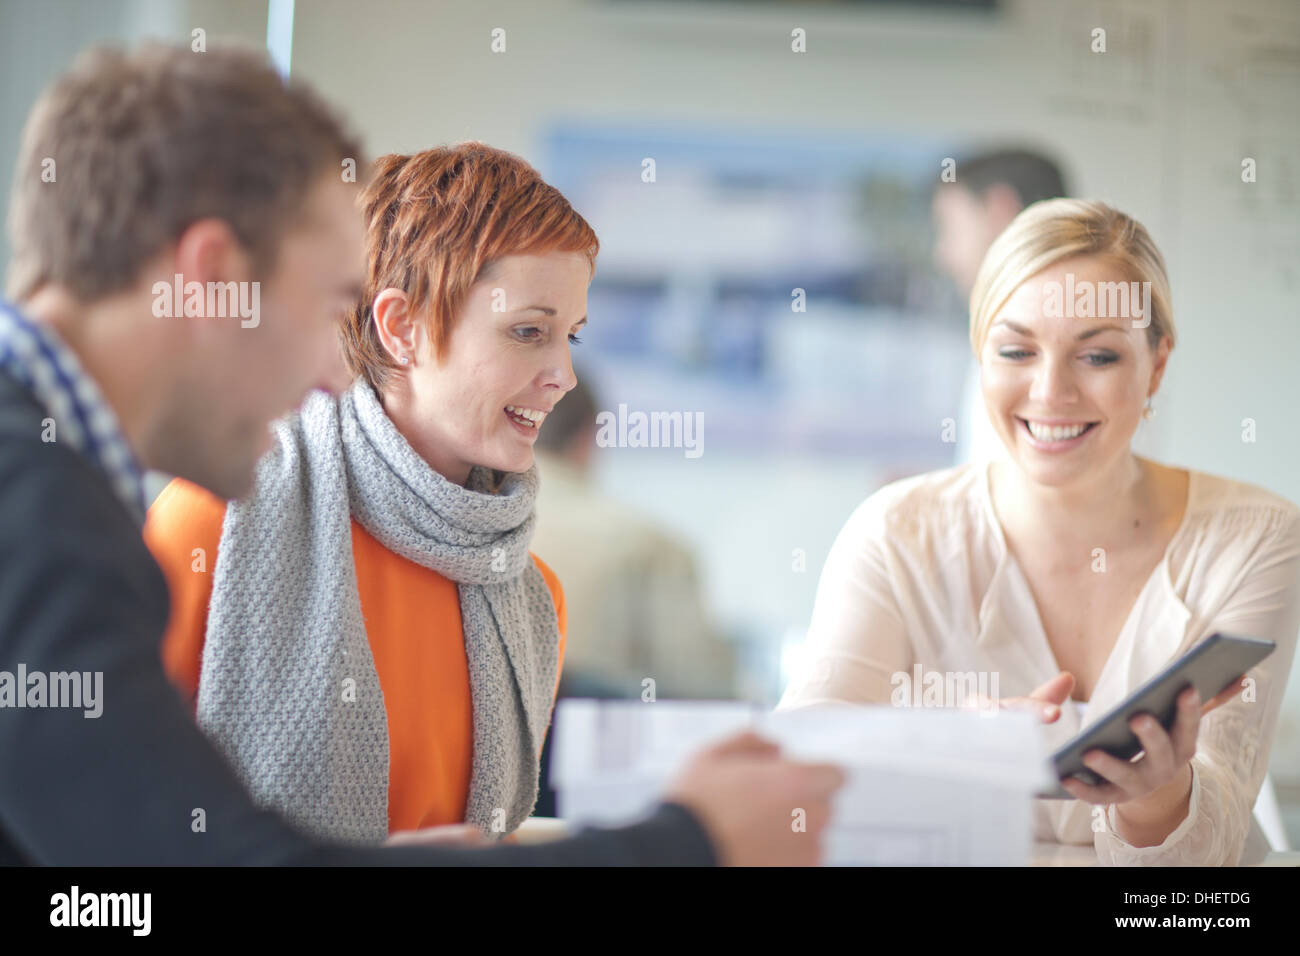 Businesspeople looking at digital tablet Photo Stock